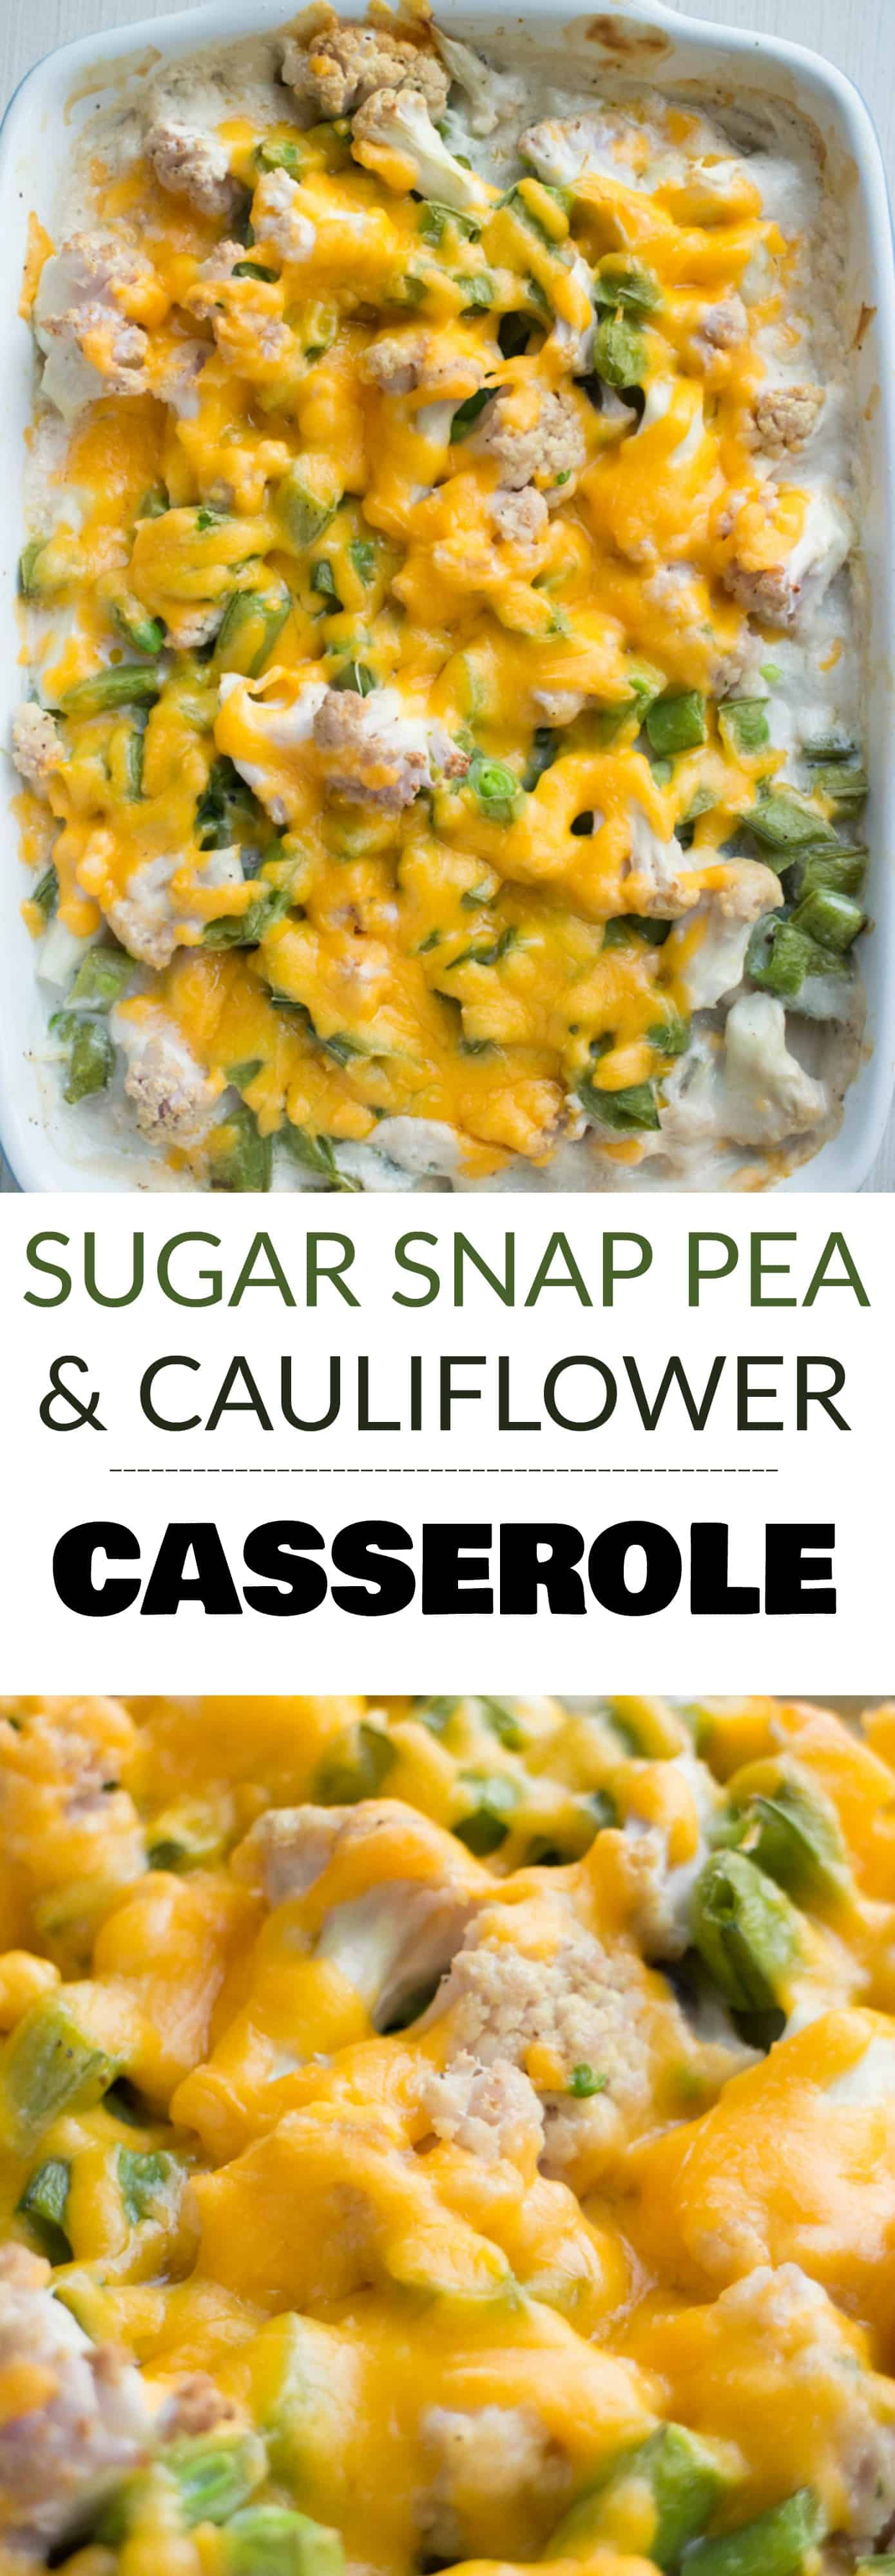 CHEESY Sugar Snap Pea and Cauliflower Casserole! This loaded recipe is simple to make with fresh vegetables and cream of mushroom soup. I love serving this easy to make casserole as a chicken side dish or a vegetarian main dish. During the Summer I always use fresh cauliflower and sugar snap peas straight from the garden!